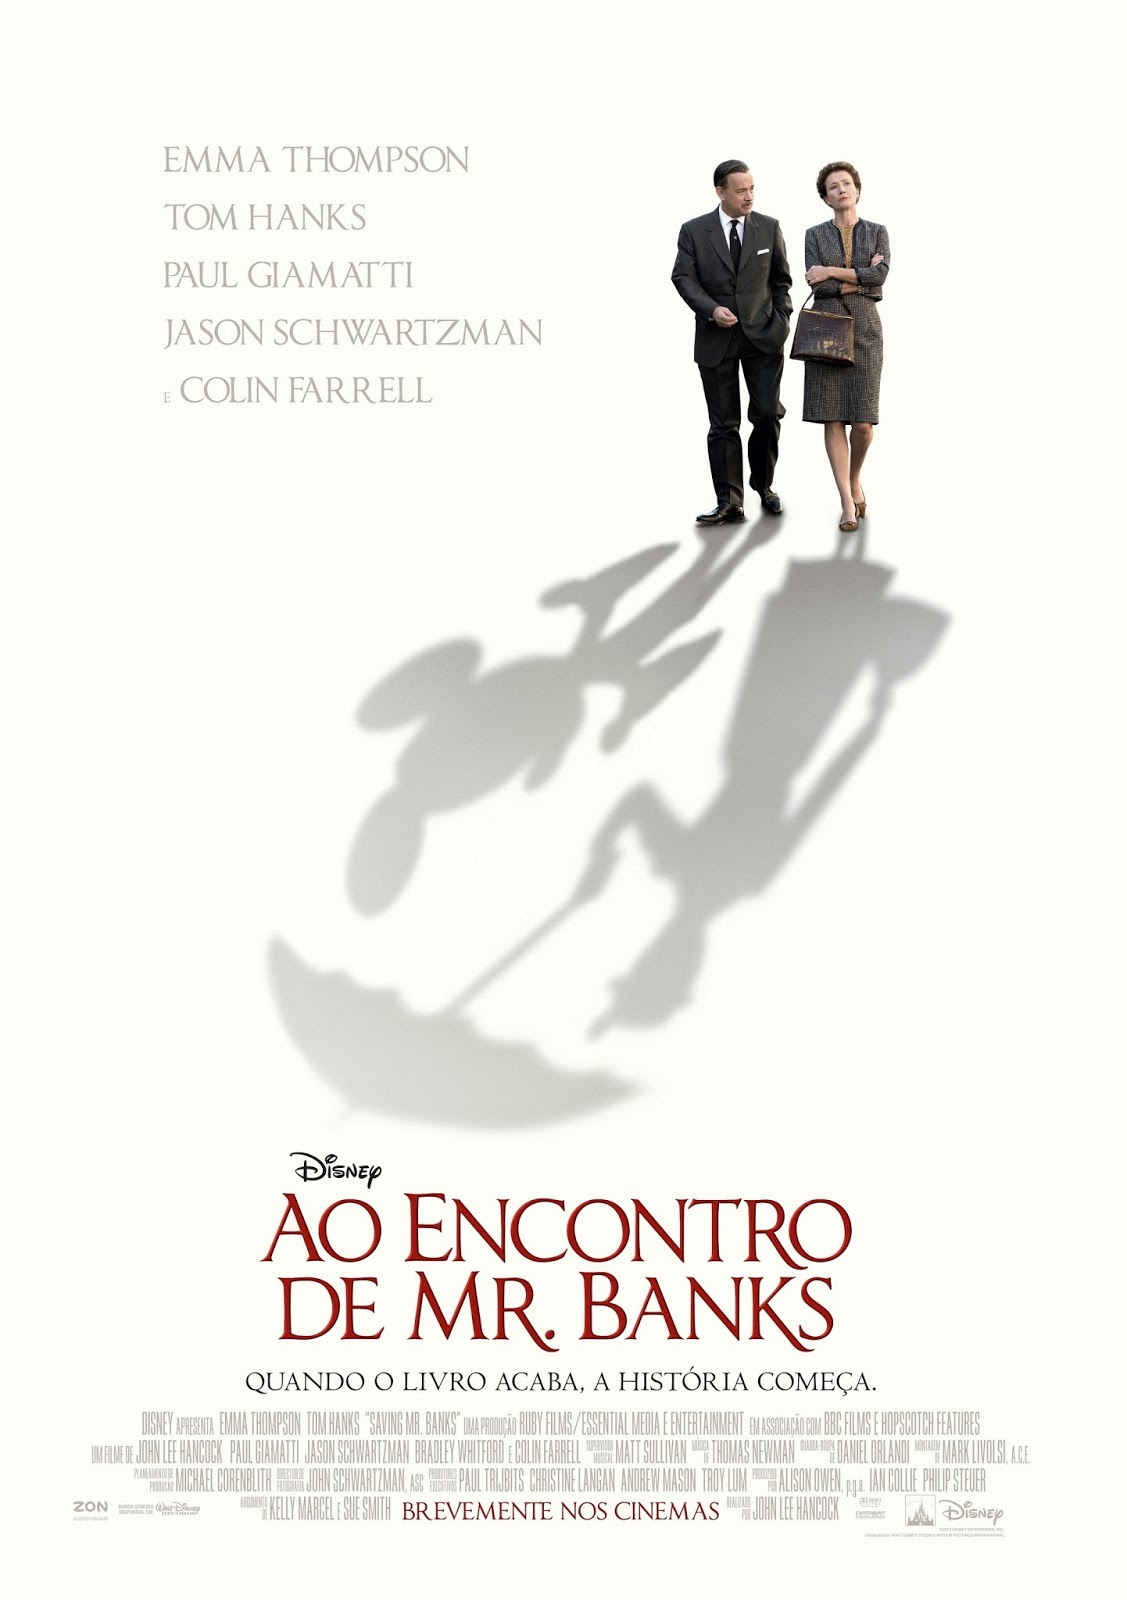 http://cinema.sapo.pt/filme/saving-mr-banks